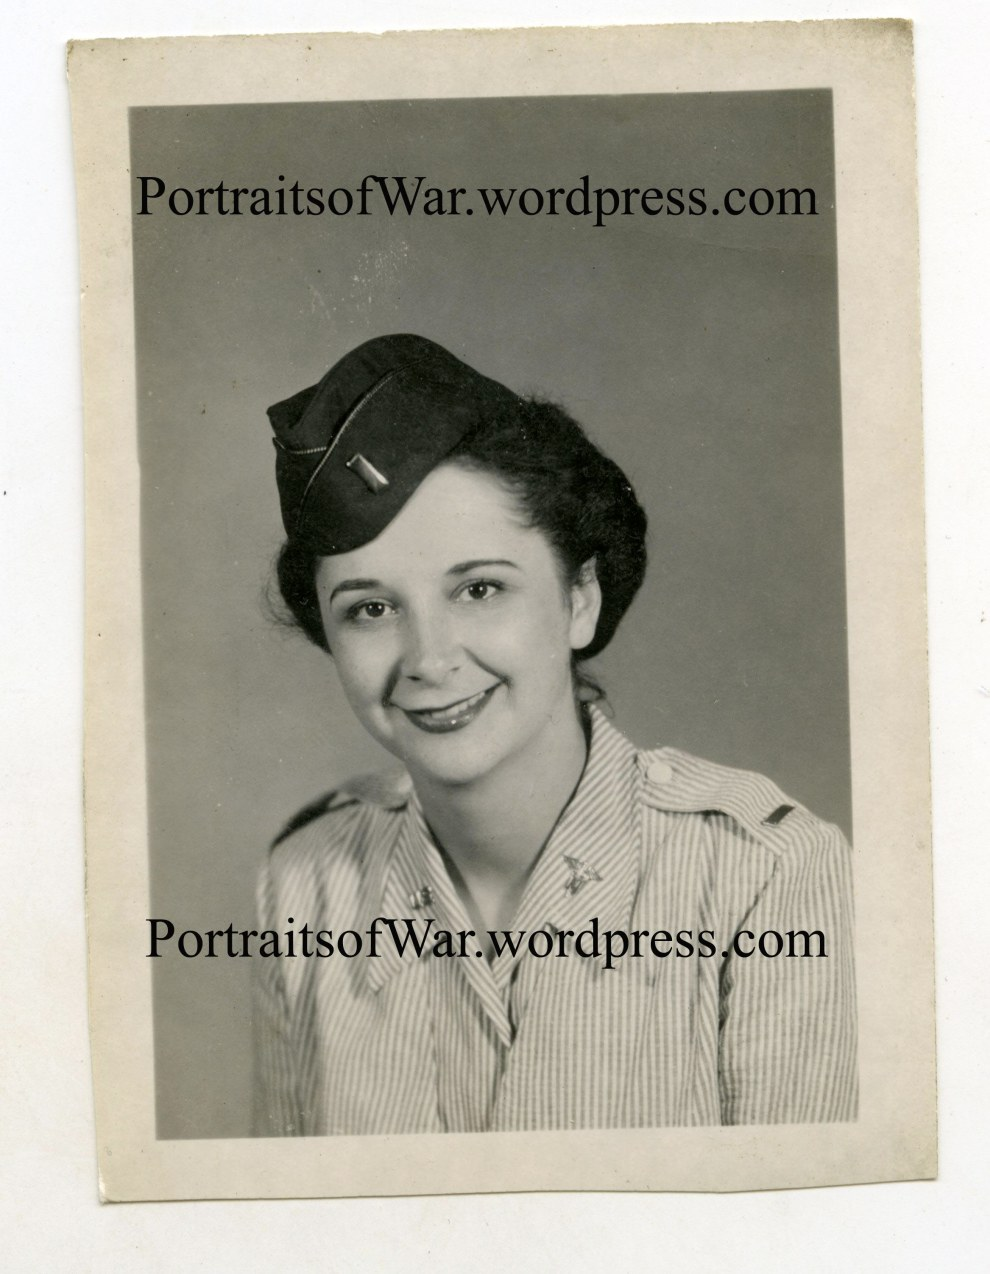 Helen as a Nurse in WWII